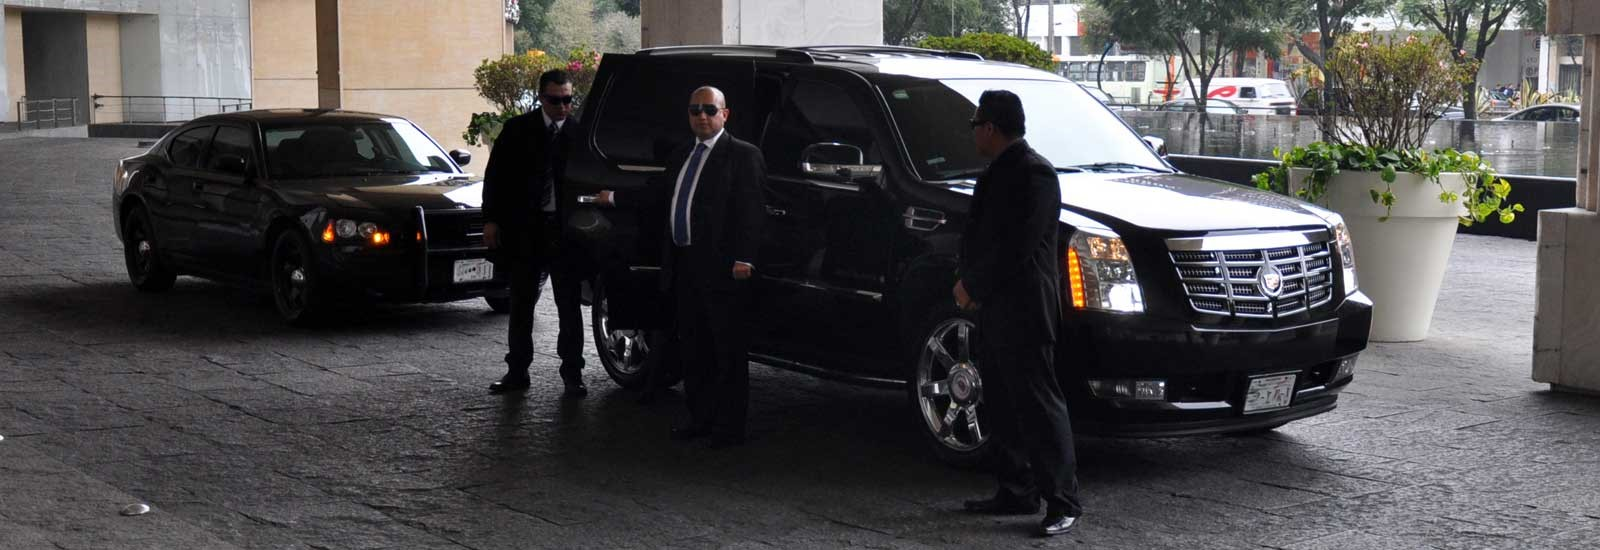 vip protection gscentre